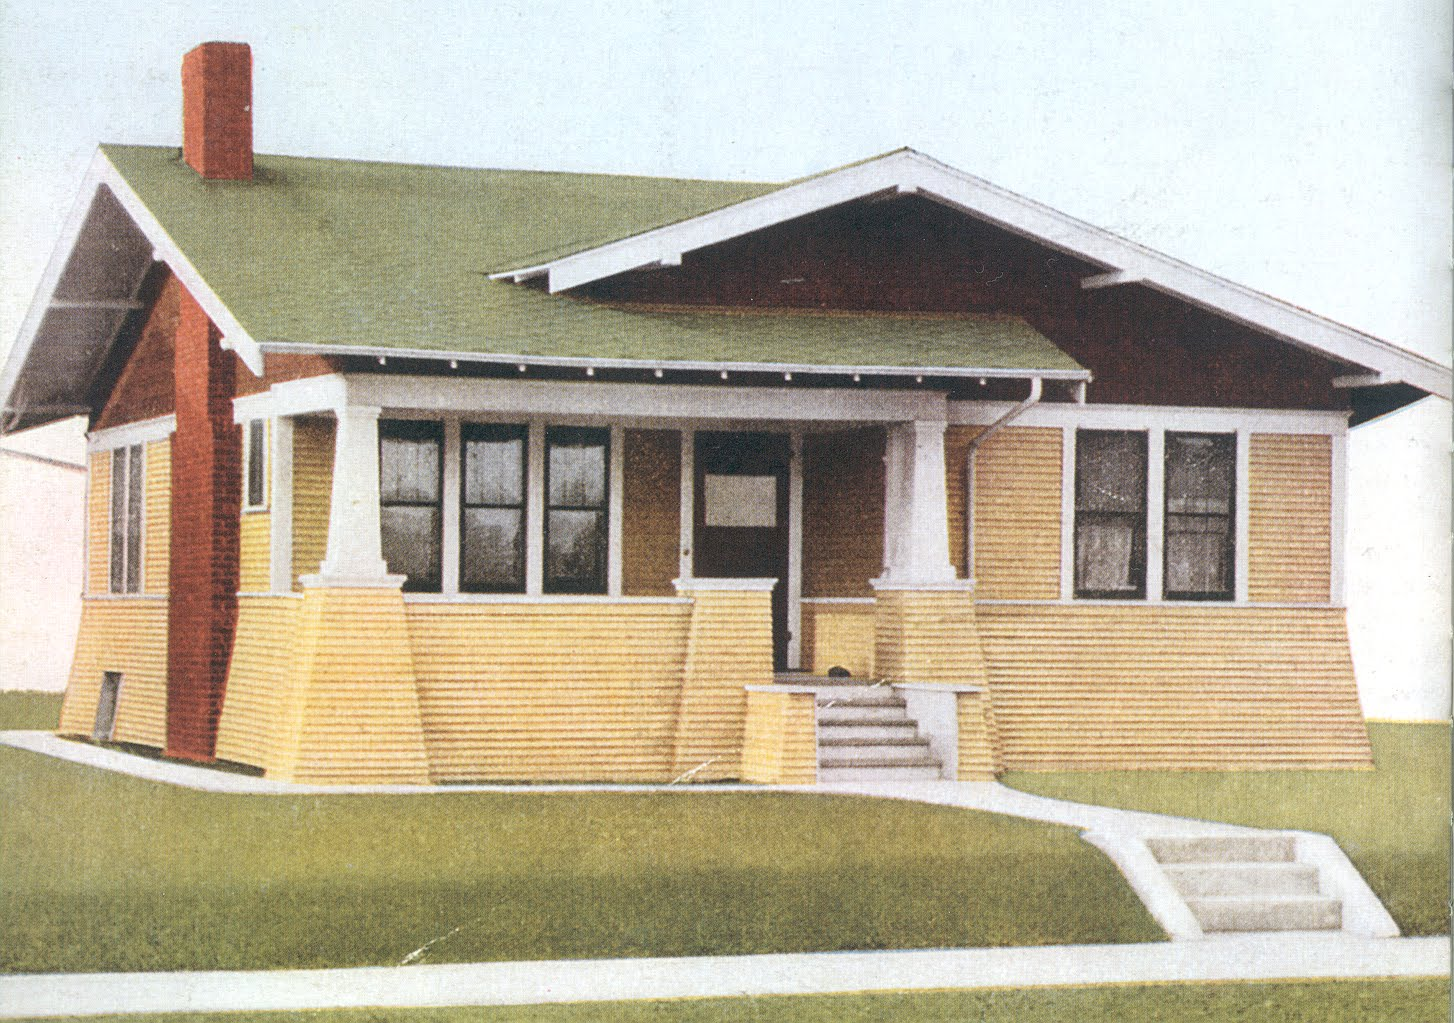 Laurelhurst craftsman bungalow craftsman exterior decision for Craftsman exterior color schemes